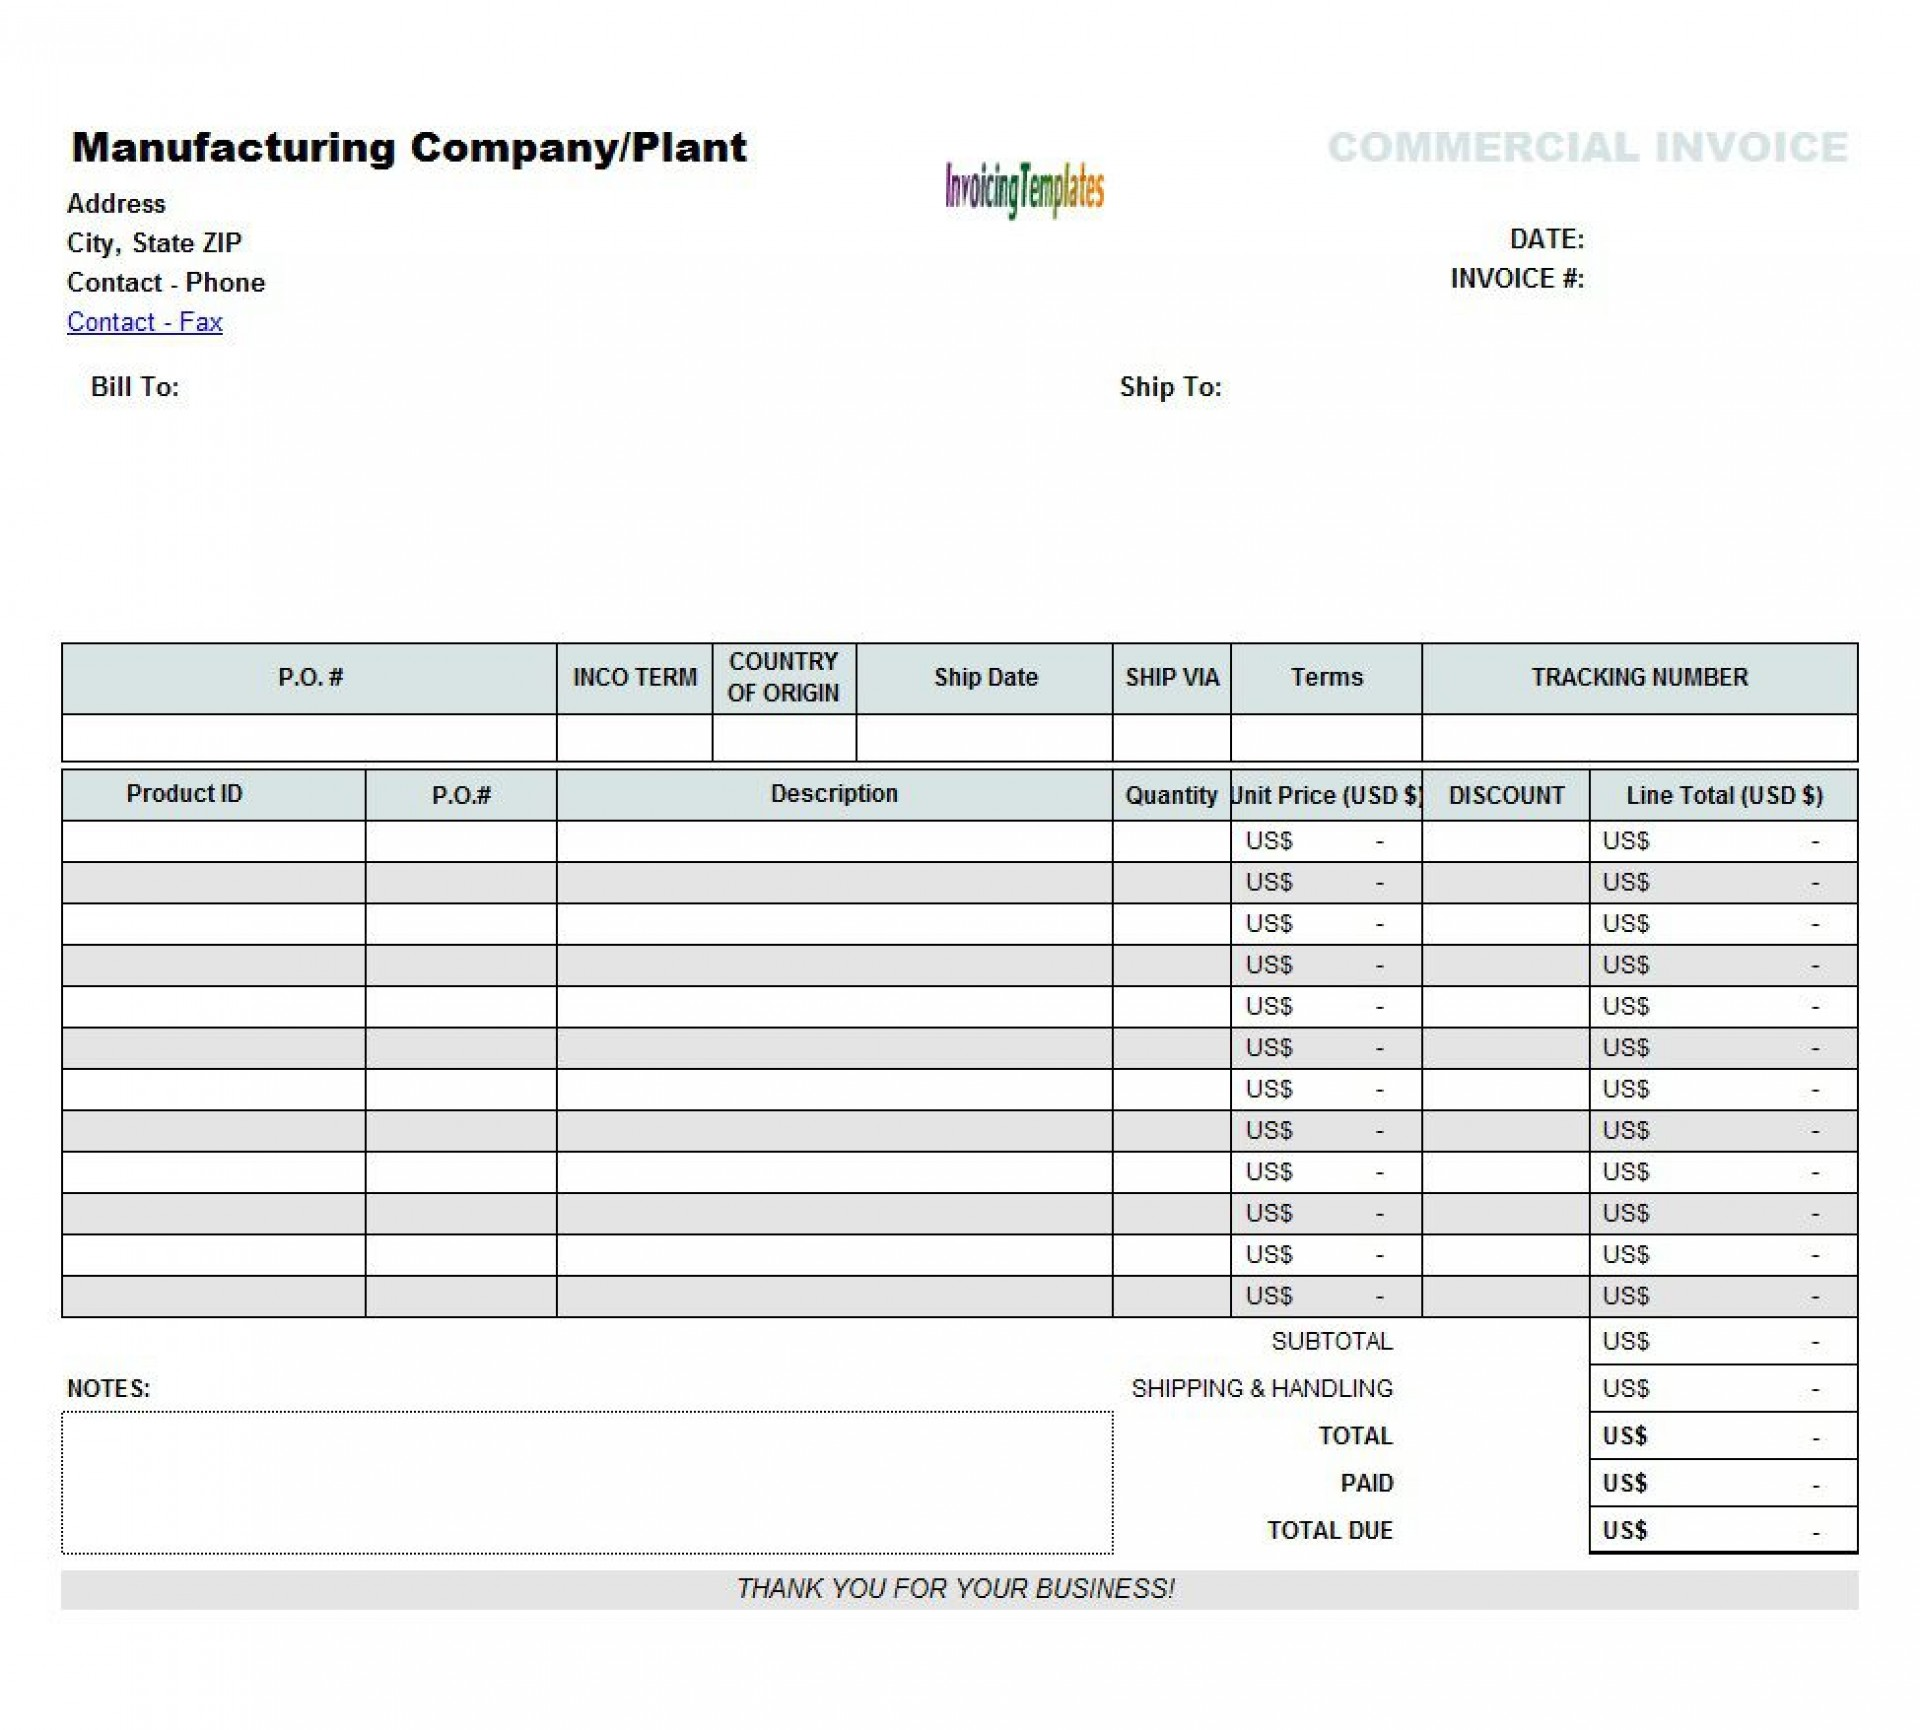 002 Exceptional Commercial Invoice Template Excel Image  Free Download1920